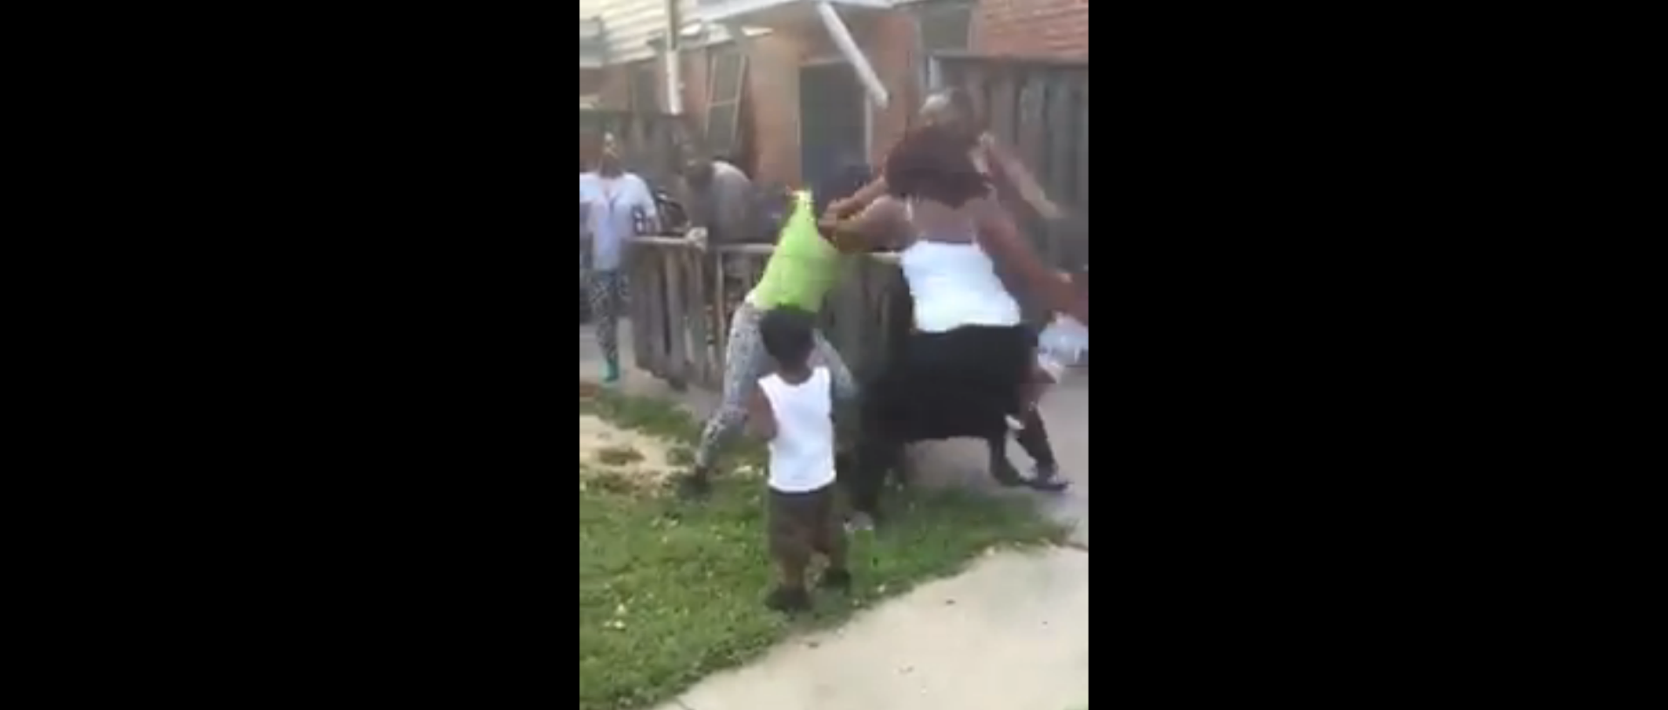 Shocking Video... Woman Drops Her Baby On Concrete During Fight